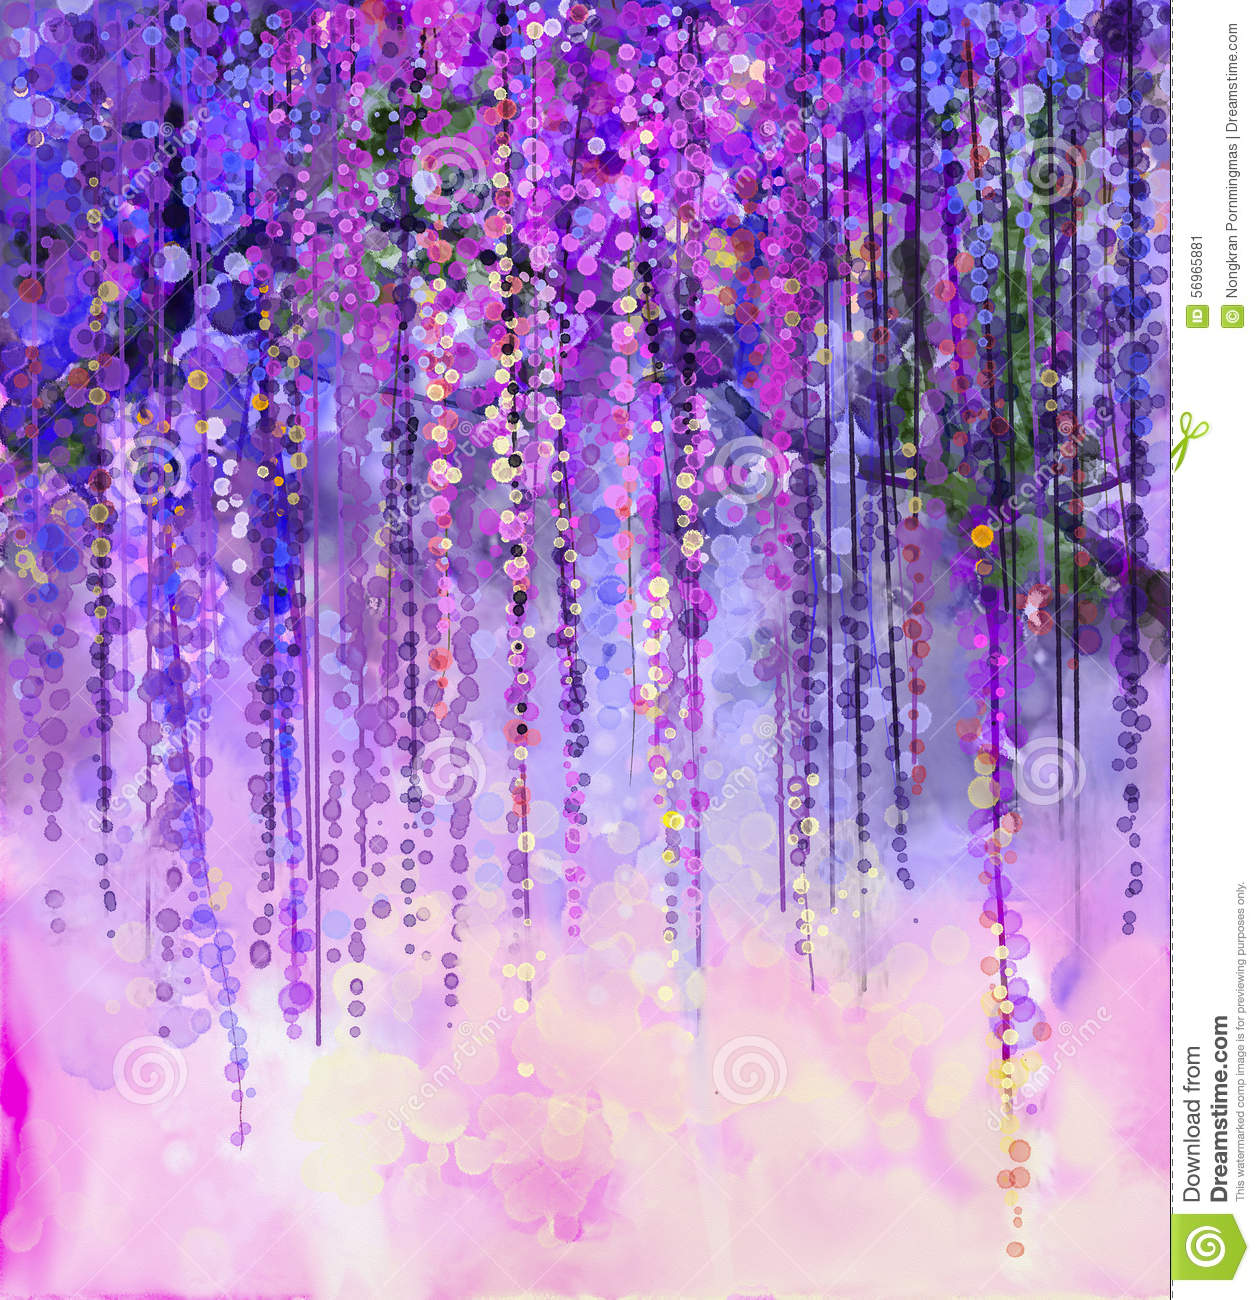 Spring purple flowers wisteria watercolor painting stock for Purple and yellow painting